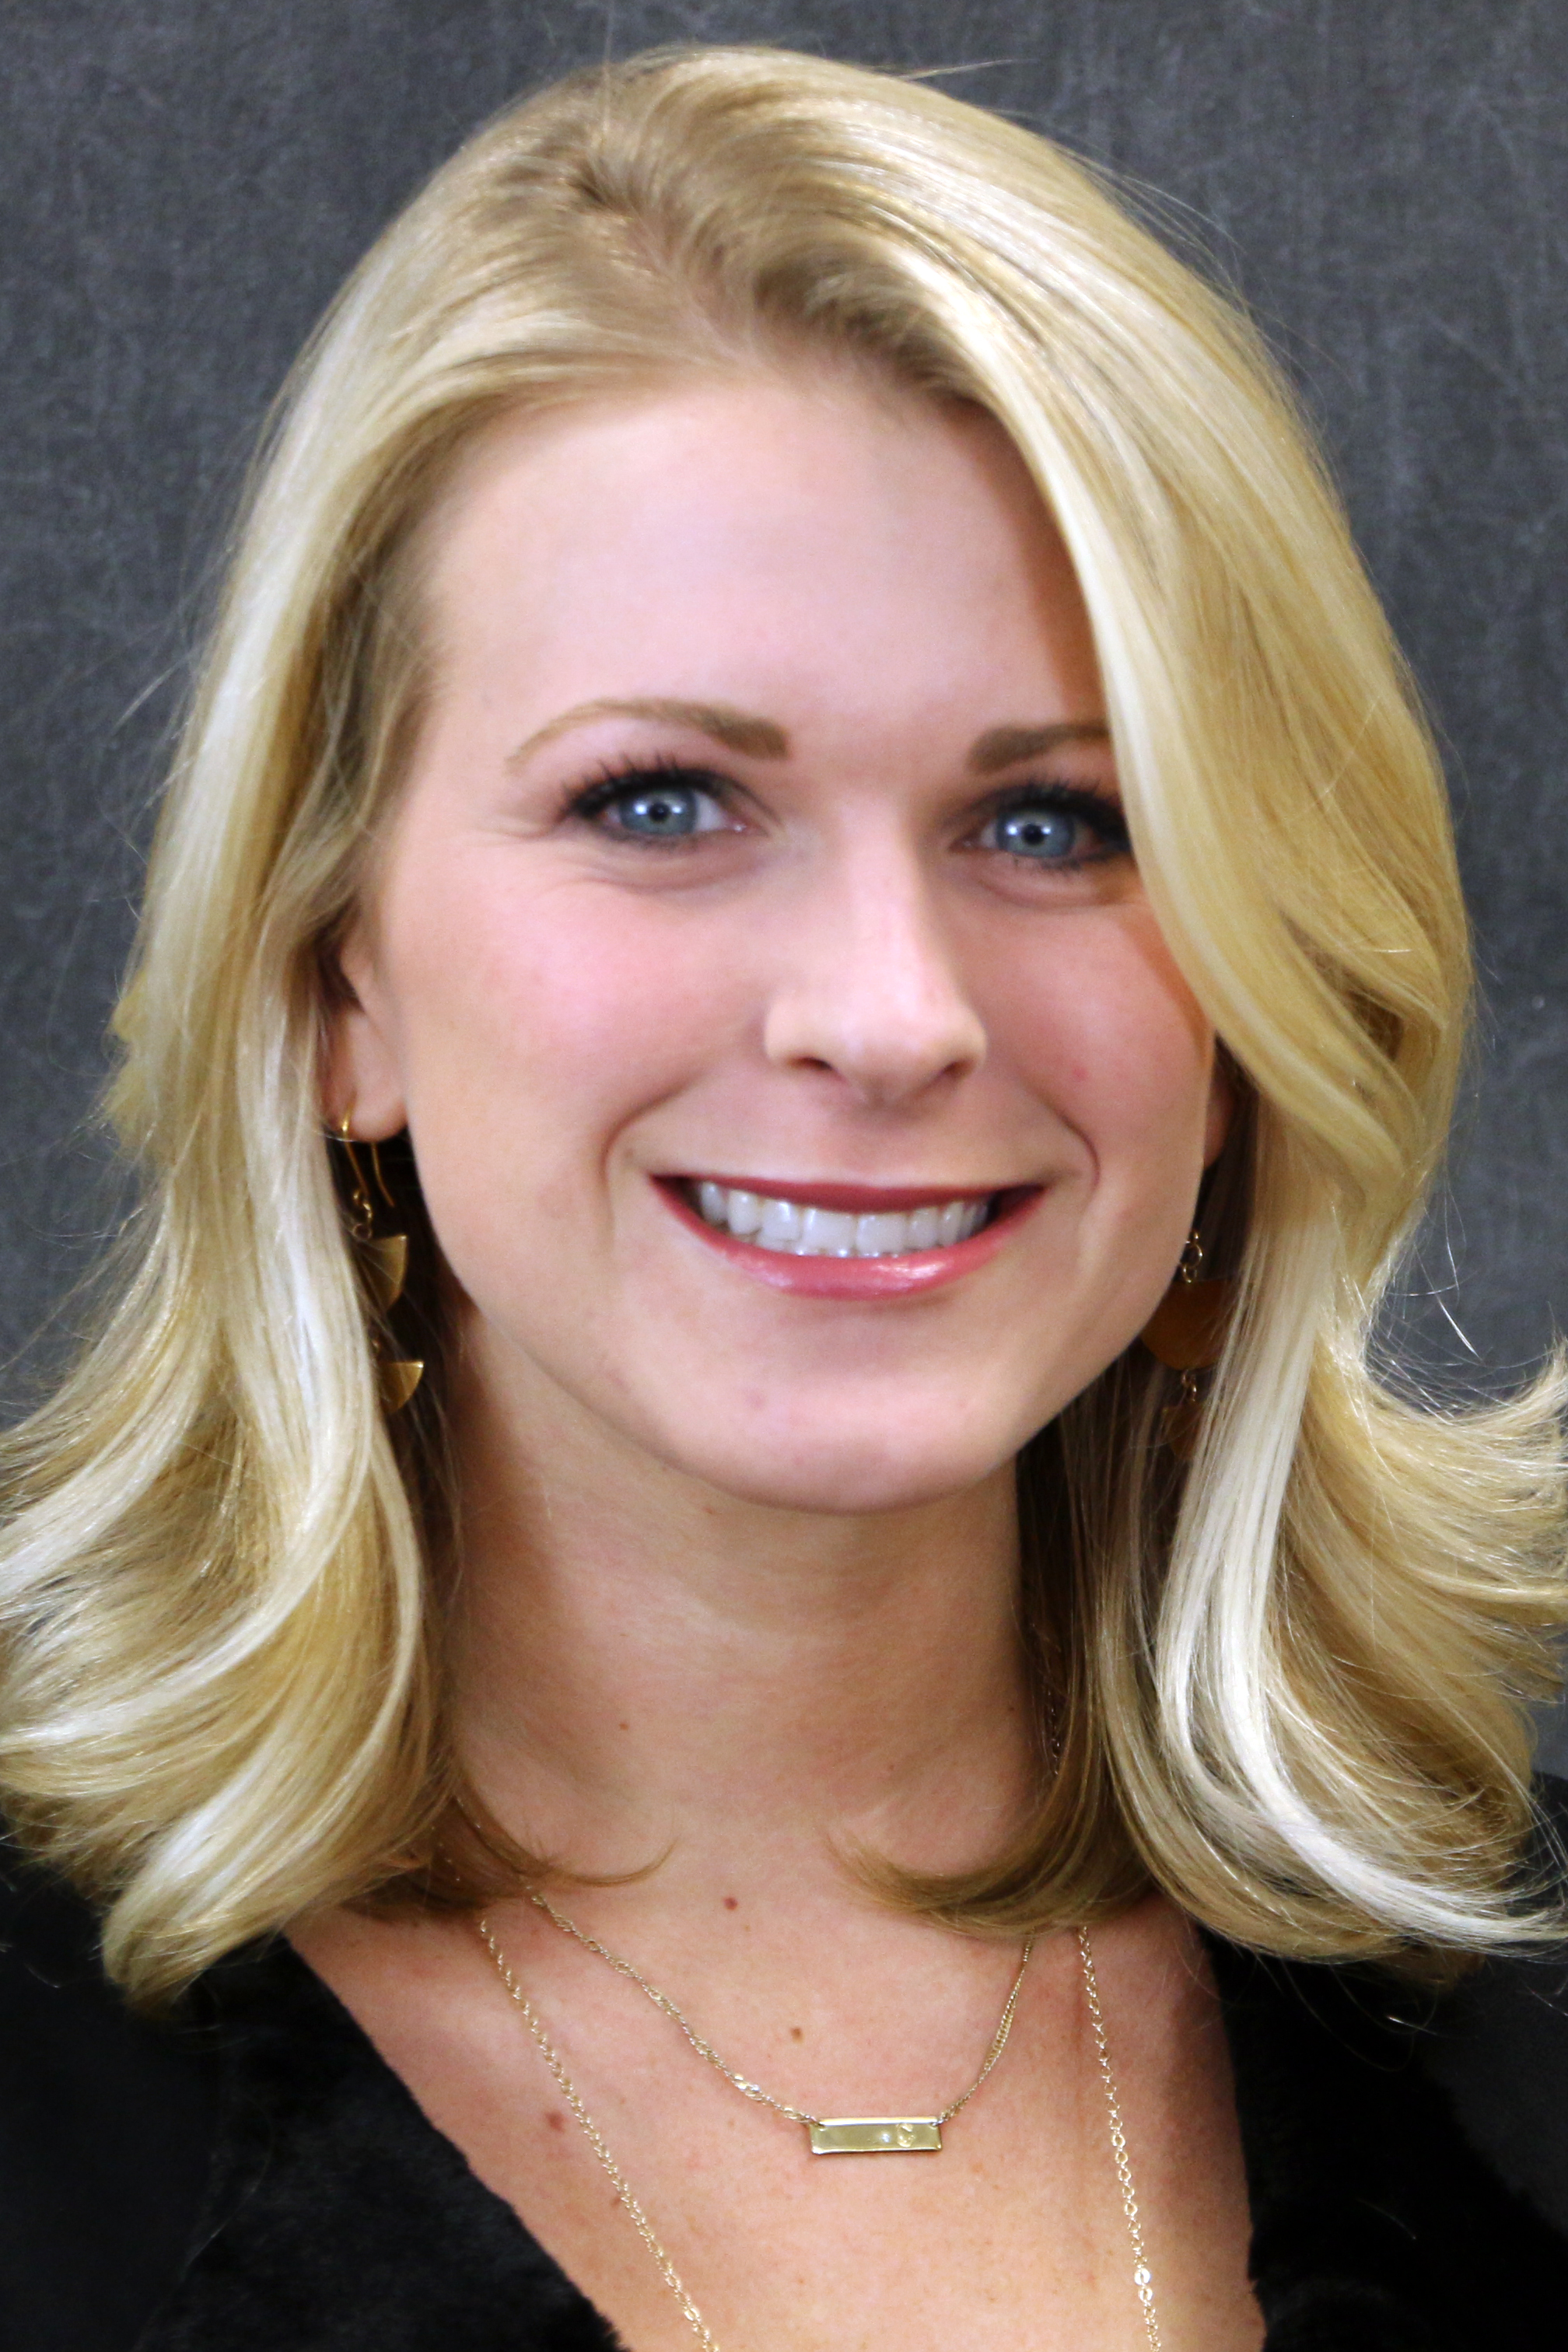 Riverdale's Chelsea Spaulding Culbreth selected for prestigious Governor's leadership program